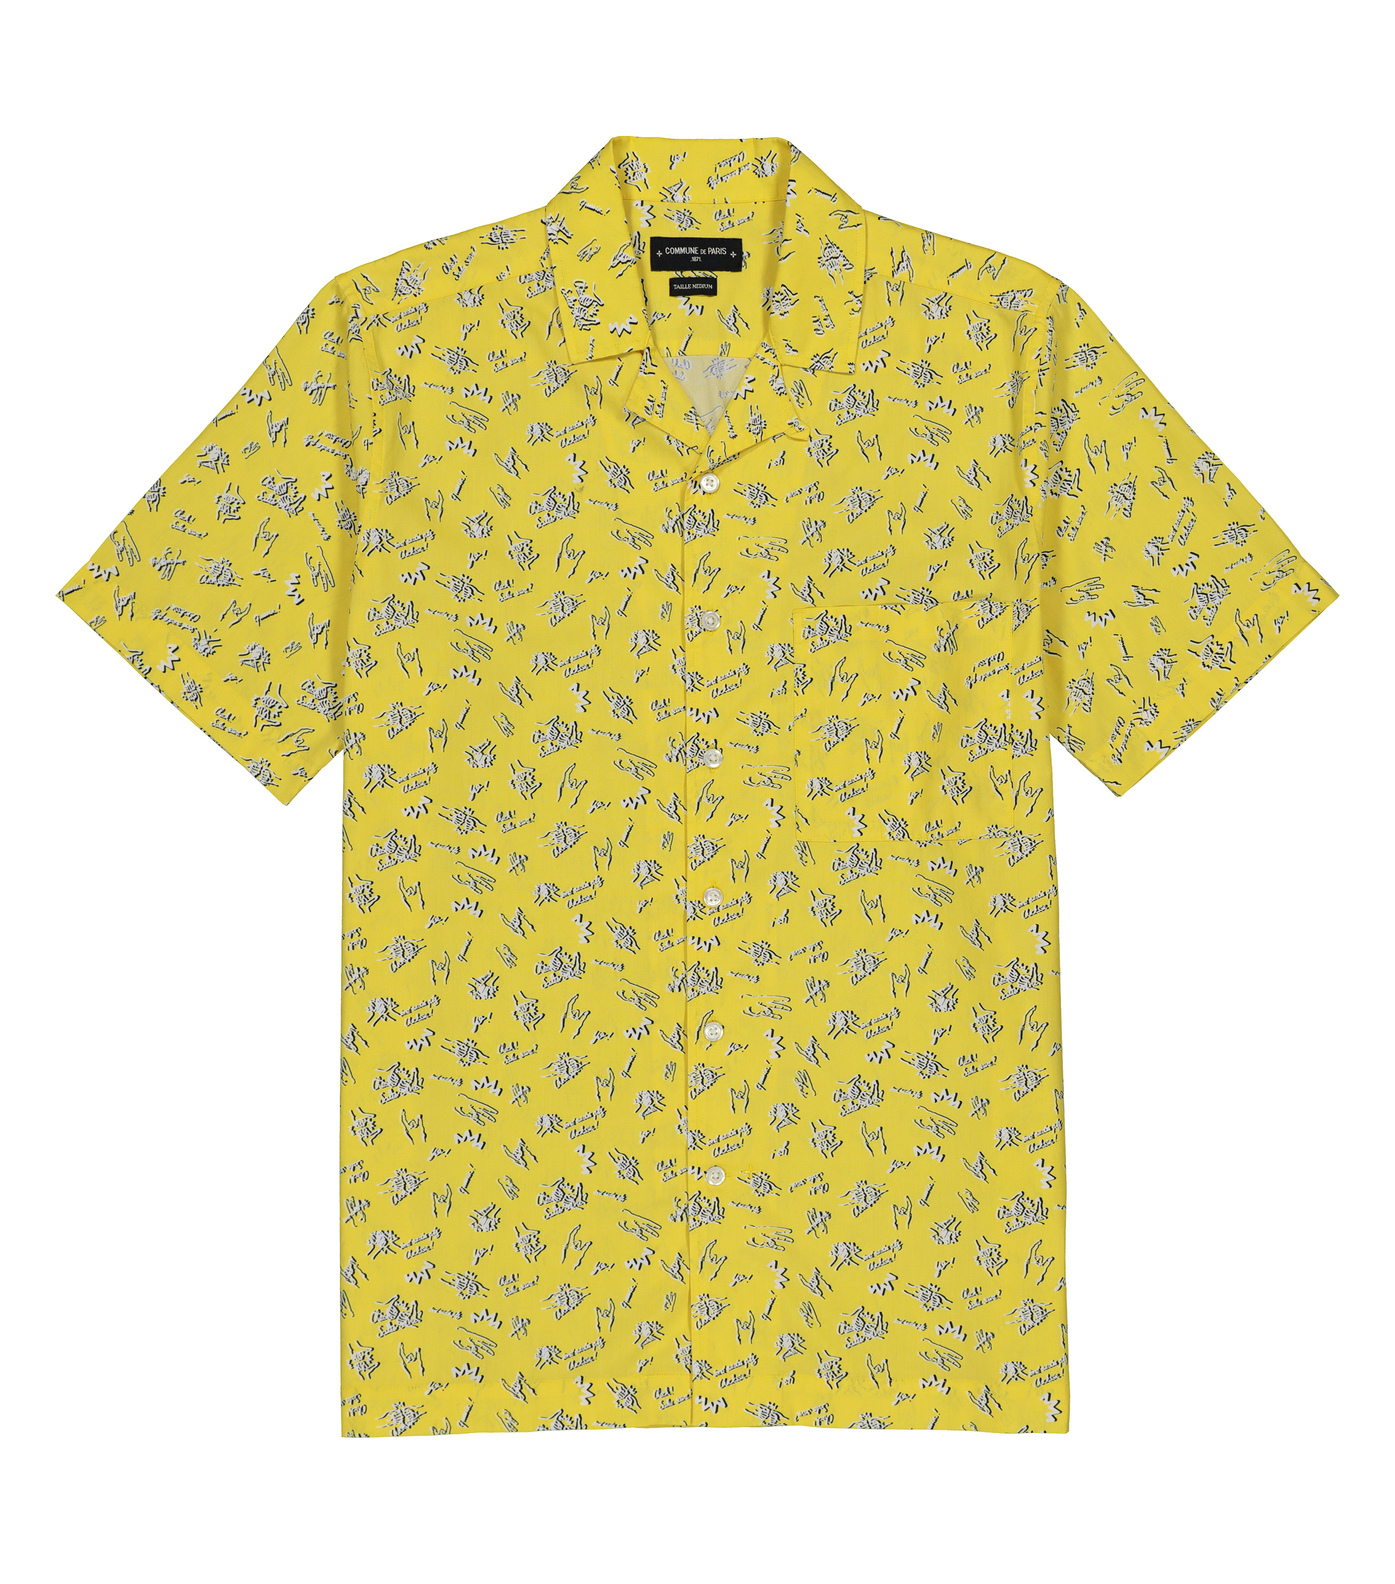 SHIRT HILO - Yellow allover